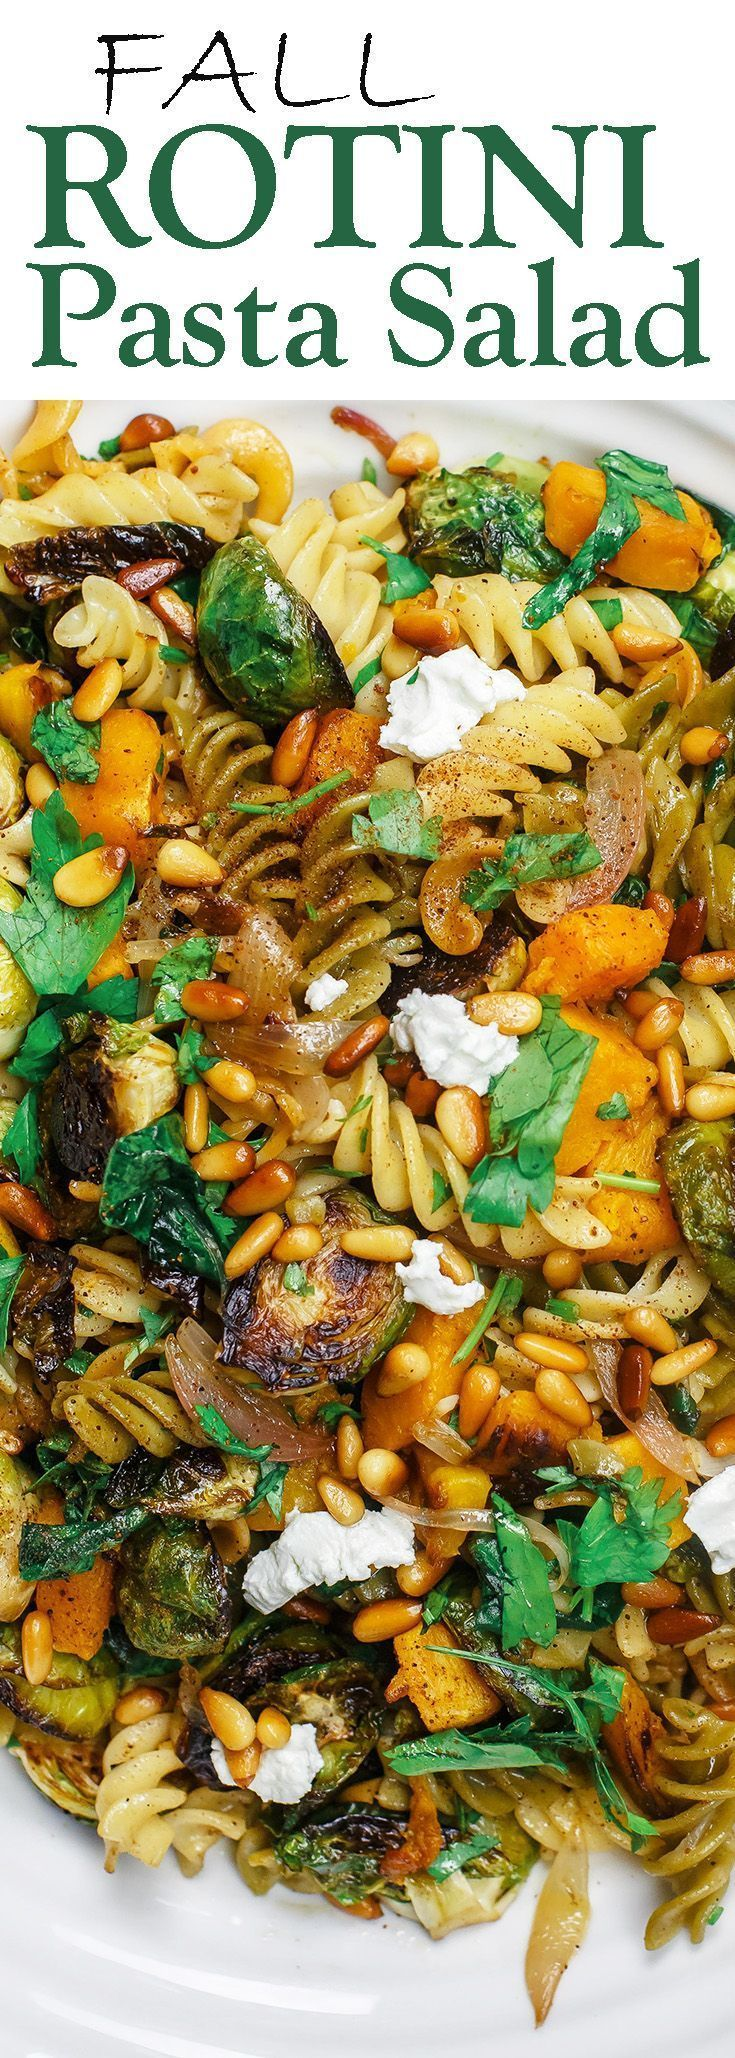 Fall Rotini Pasta Salad | The Mediterranean Dish. A simple pasta salad with charred butternut squash, burssels sprouts, spinach, and fresh parsley. A simple browned butter and olive oil sauce with shallots rounds everything together. A must-try fall salad or side holiday recipe for Thanksgiving!